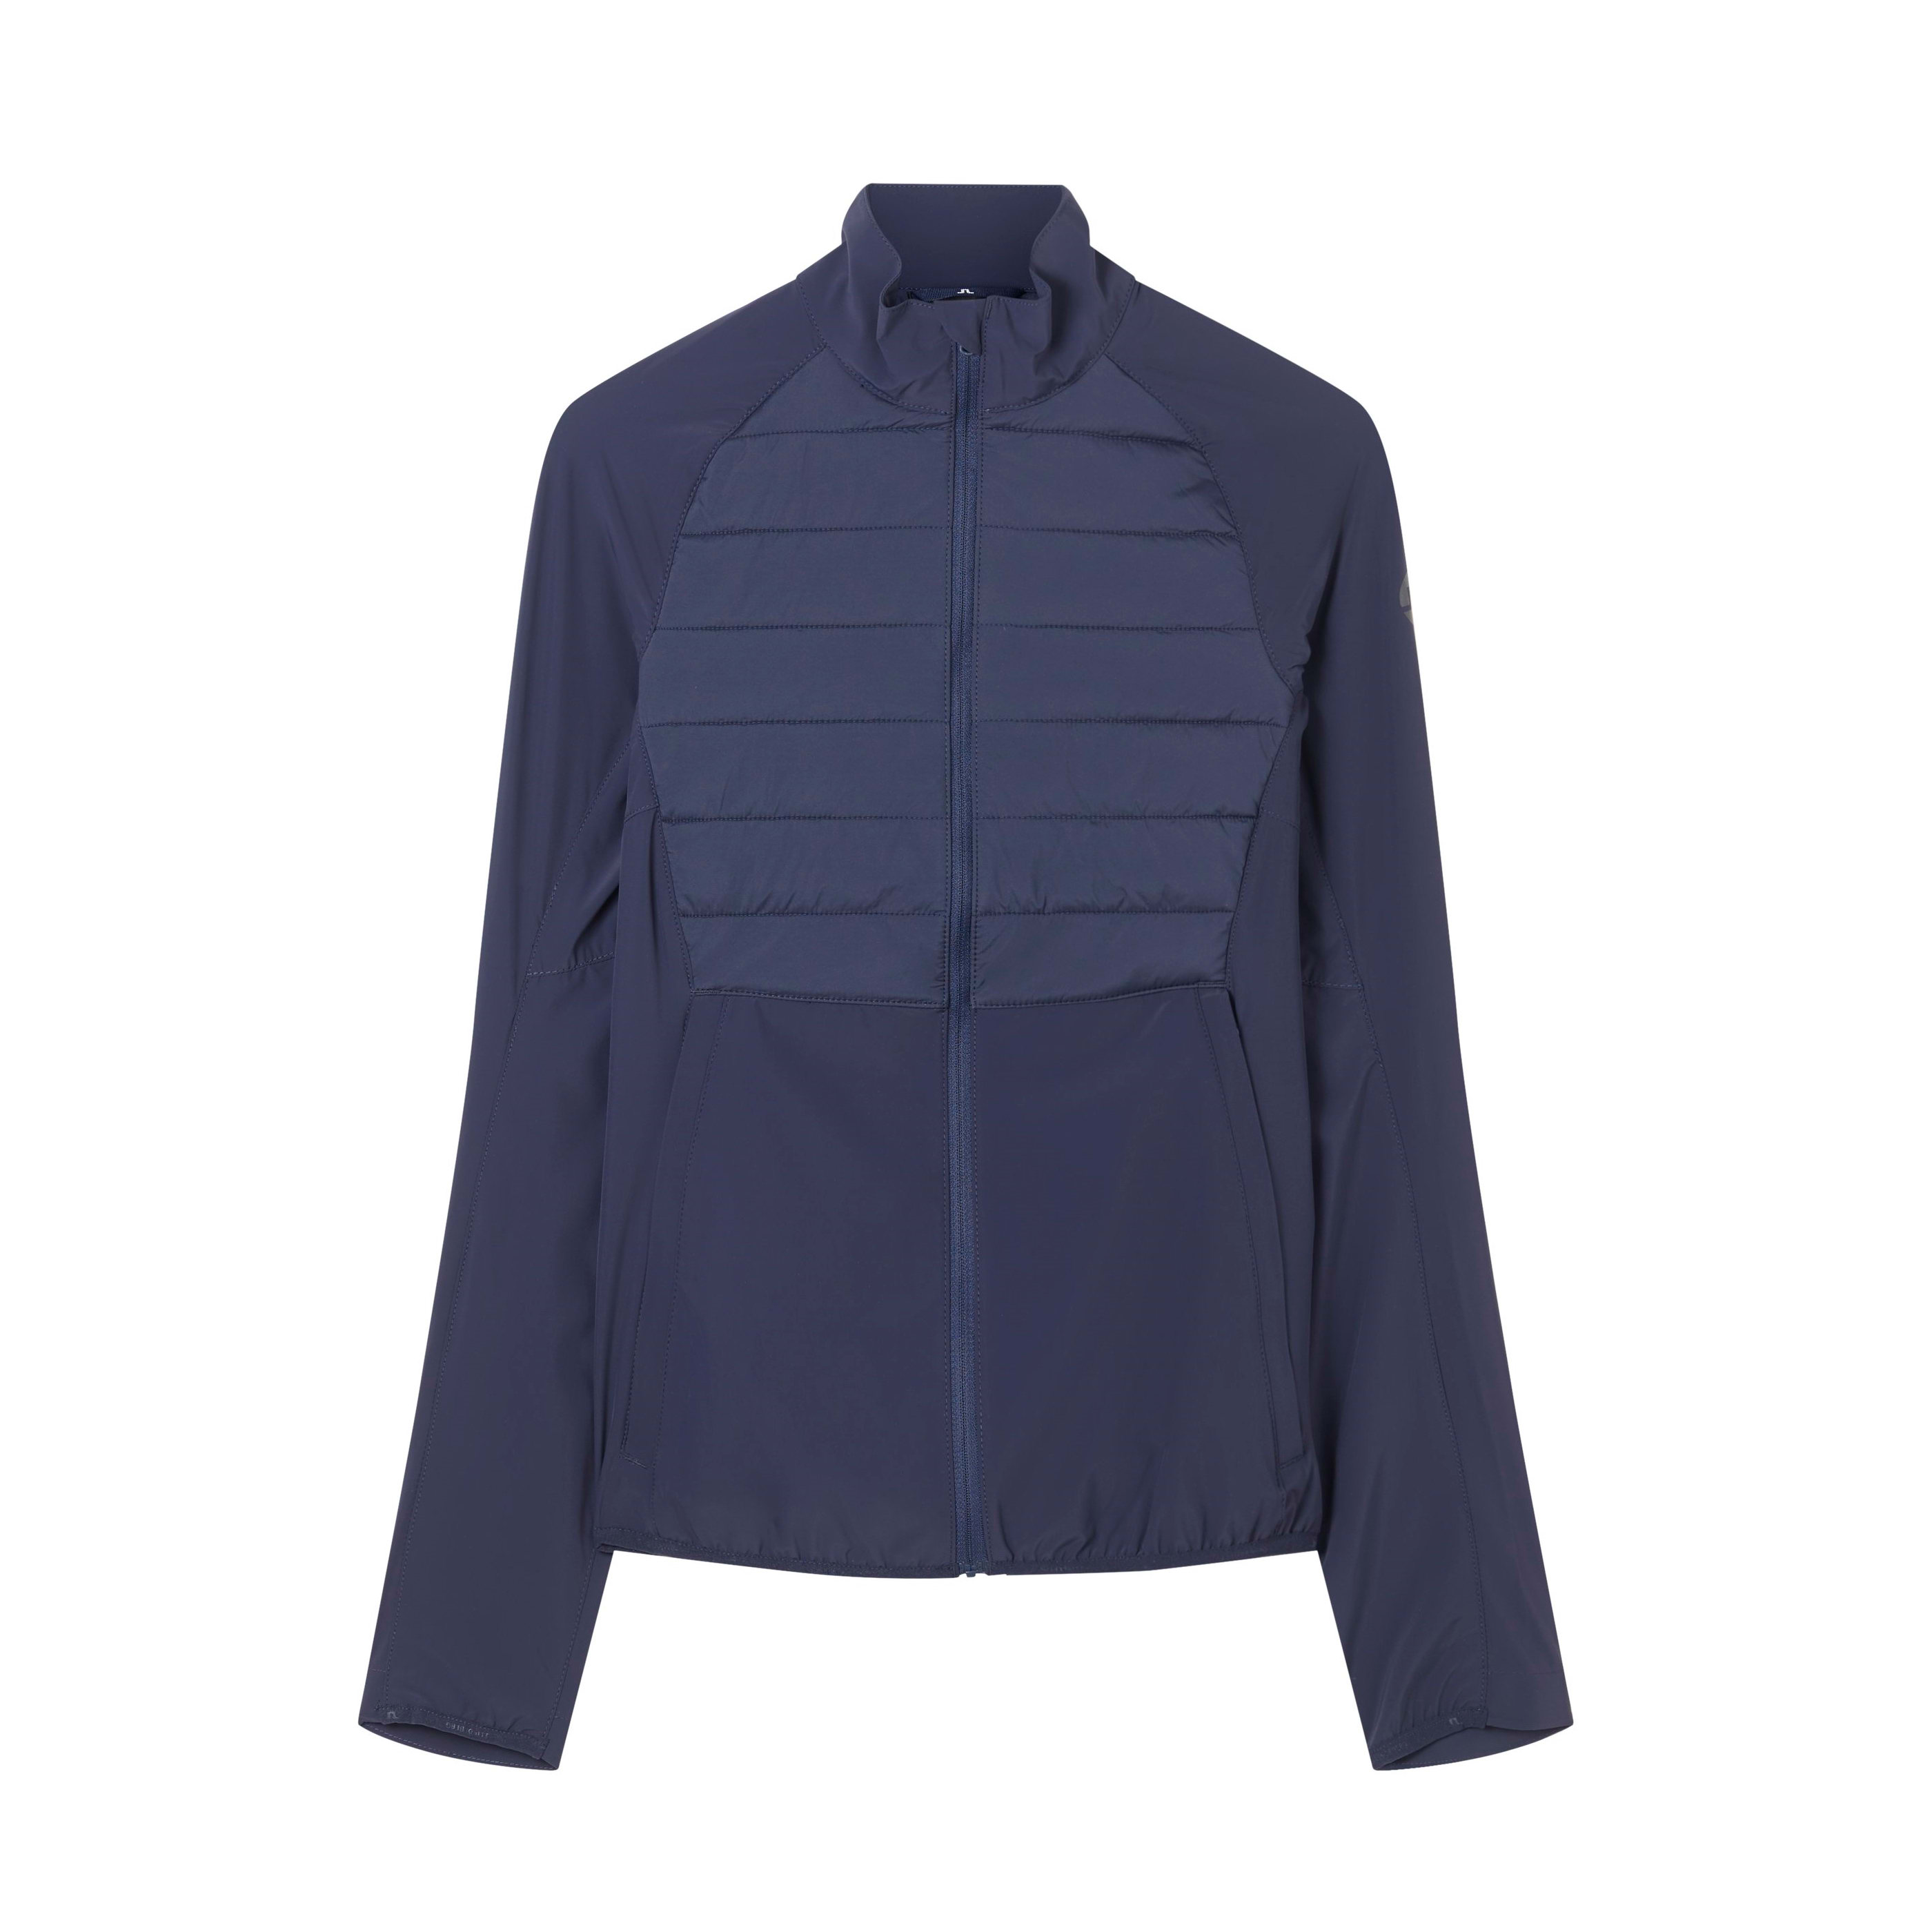 J.Lindeberg Mens Insulated Hybrid Jacket